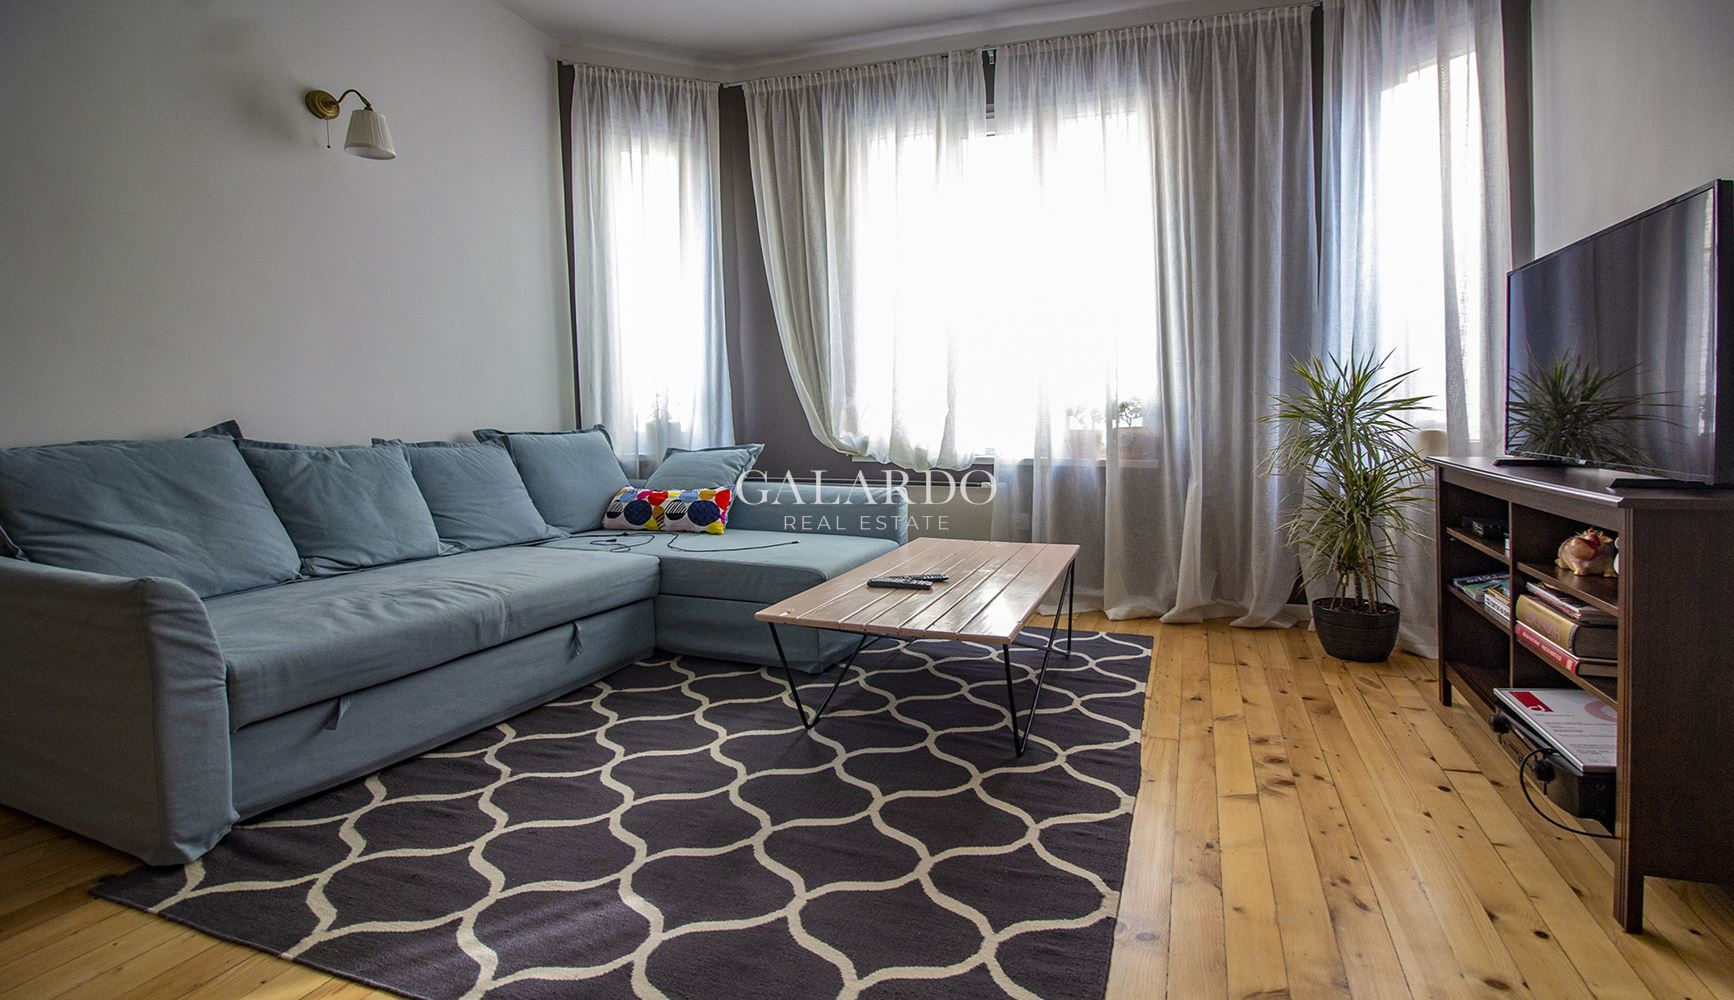 Two bedroom, luxury apartment in the center